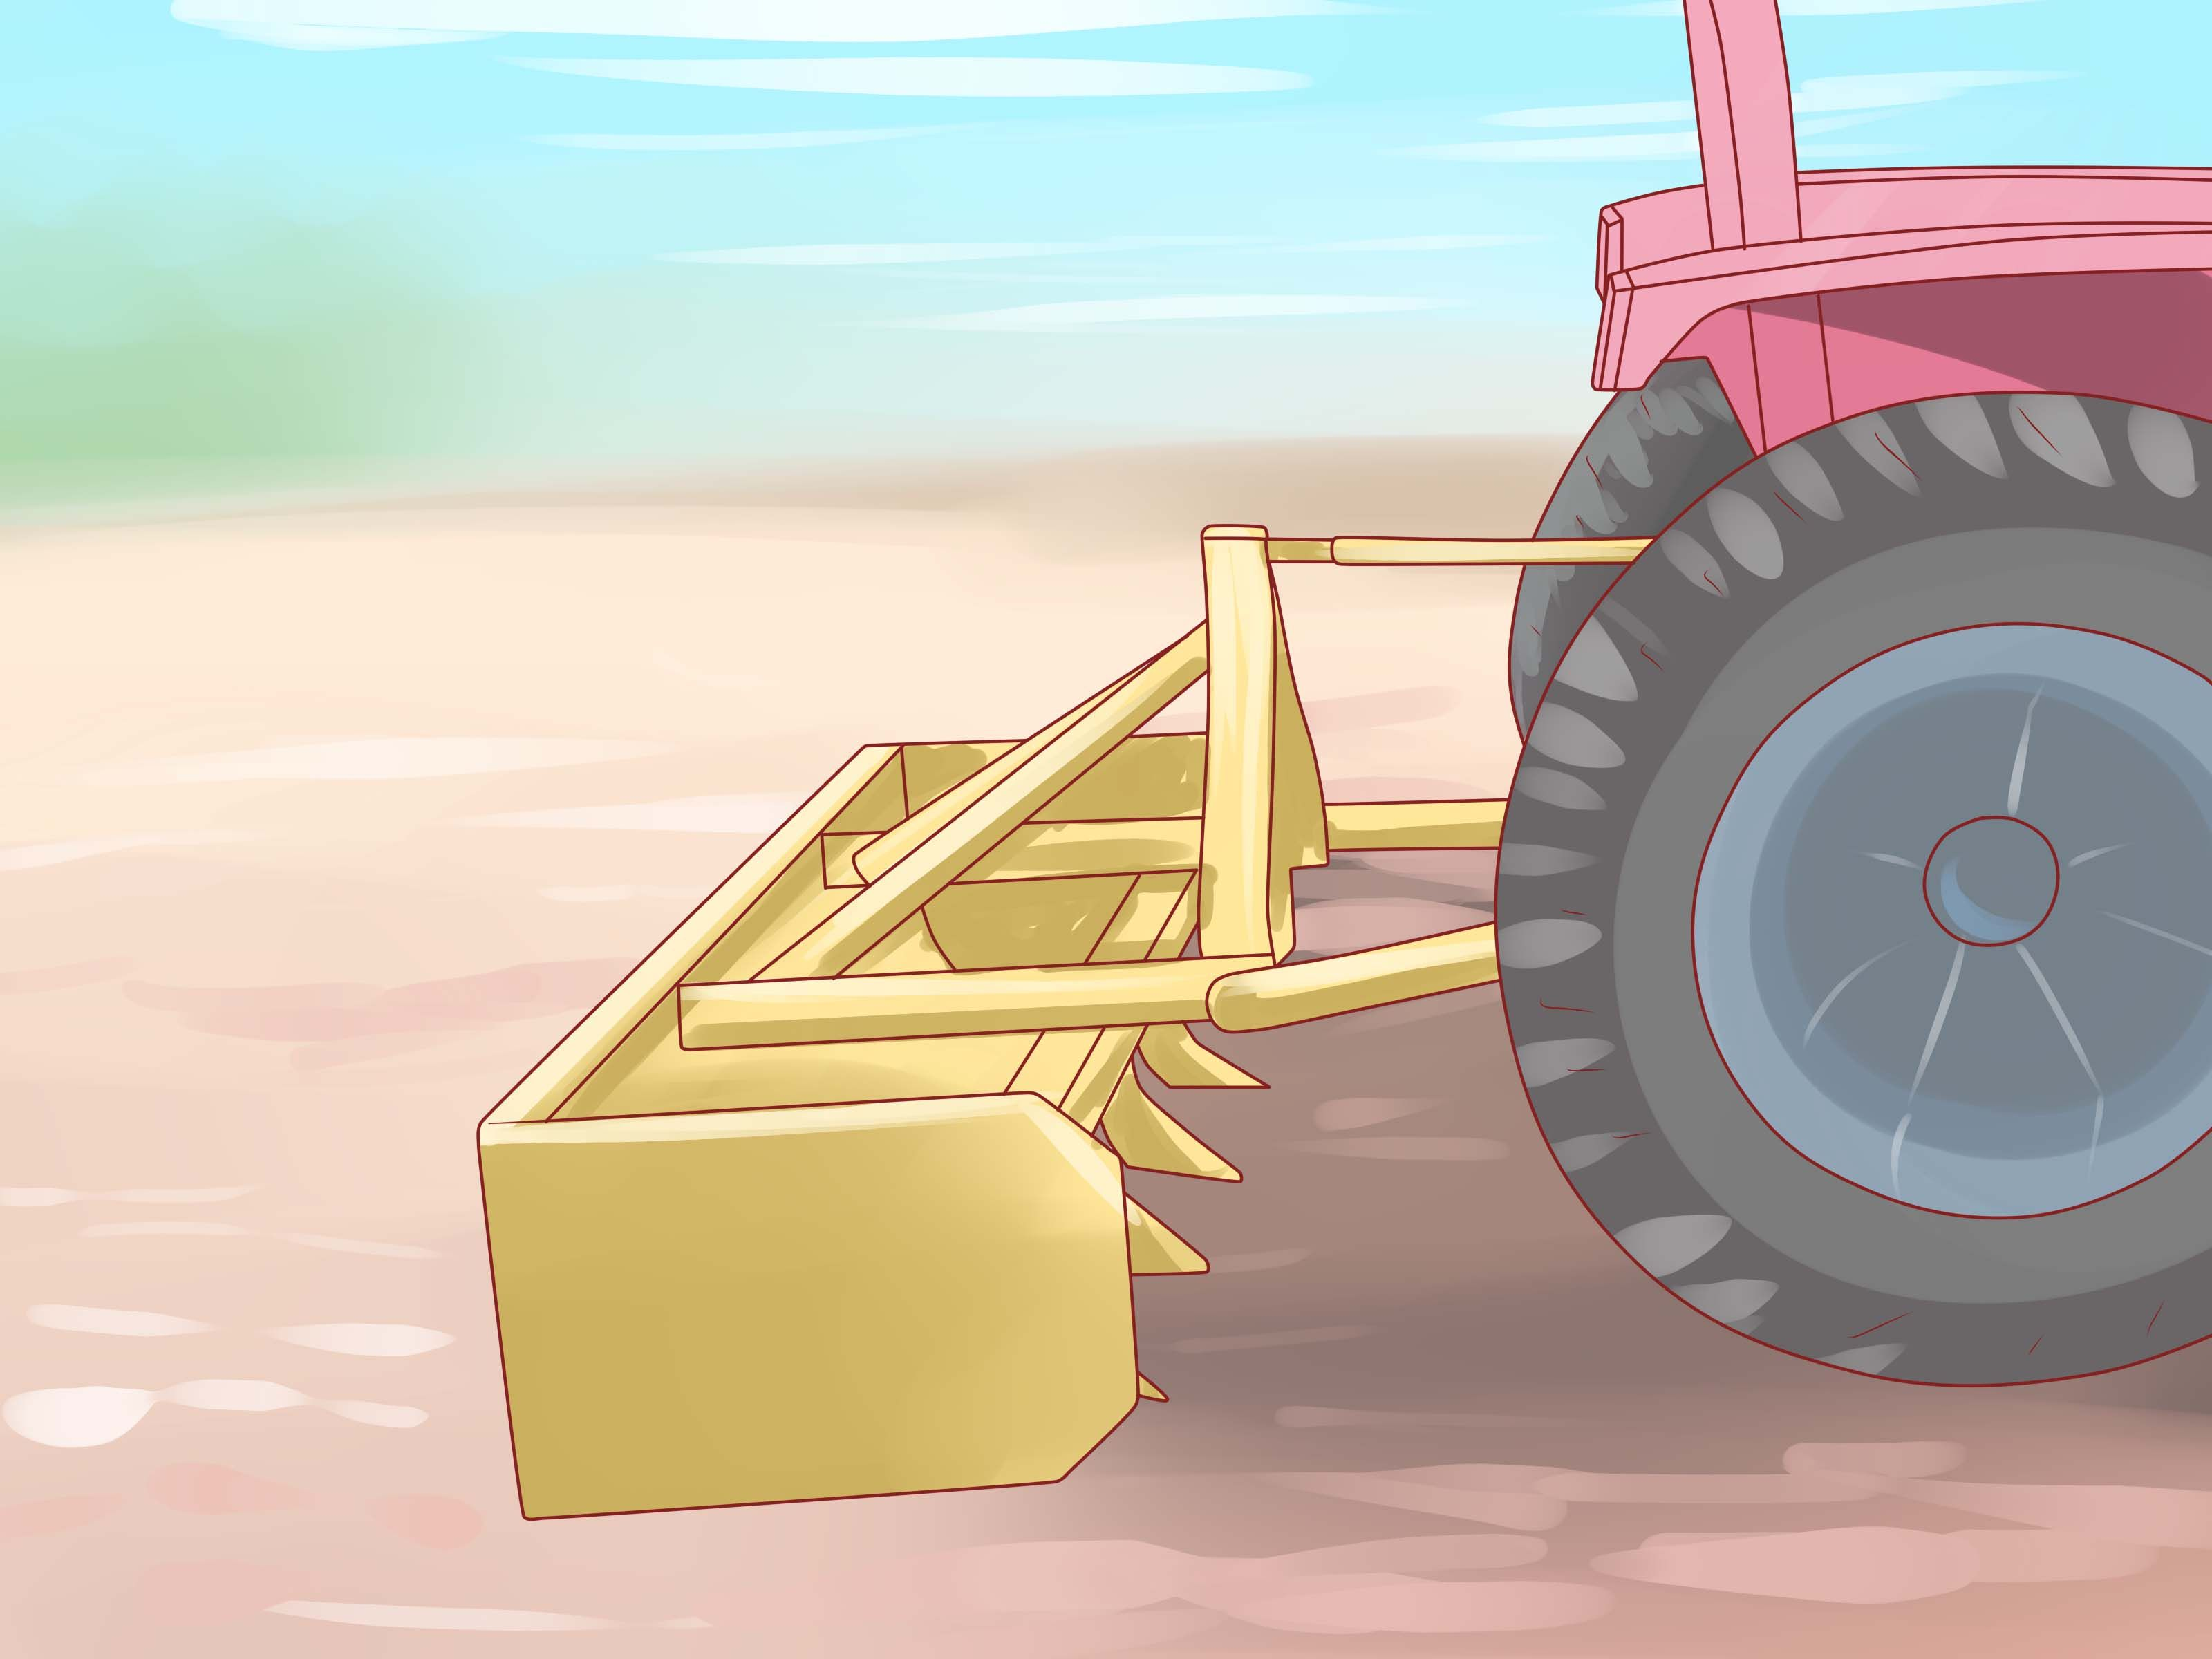 Maintain a Dirt or Gravel Drive or Road Gravel drive